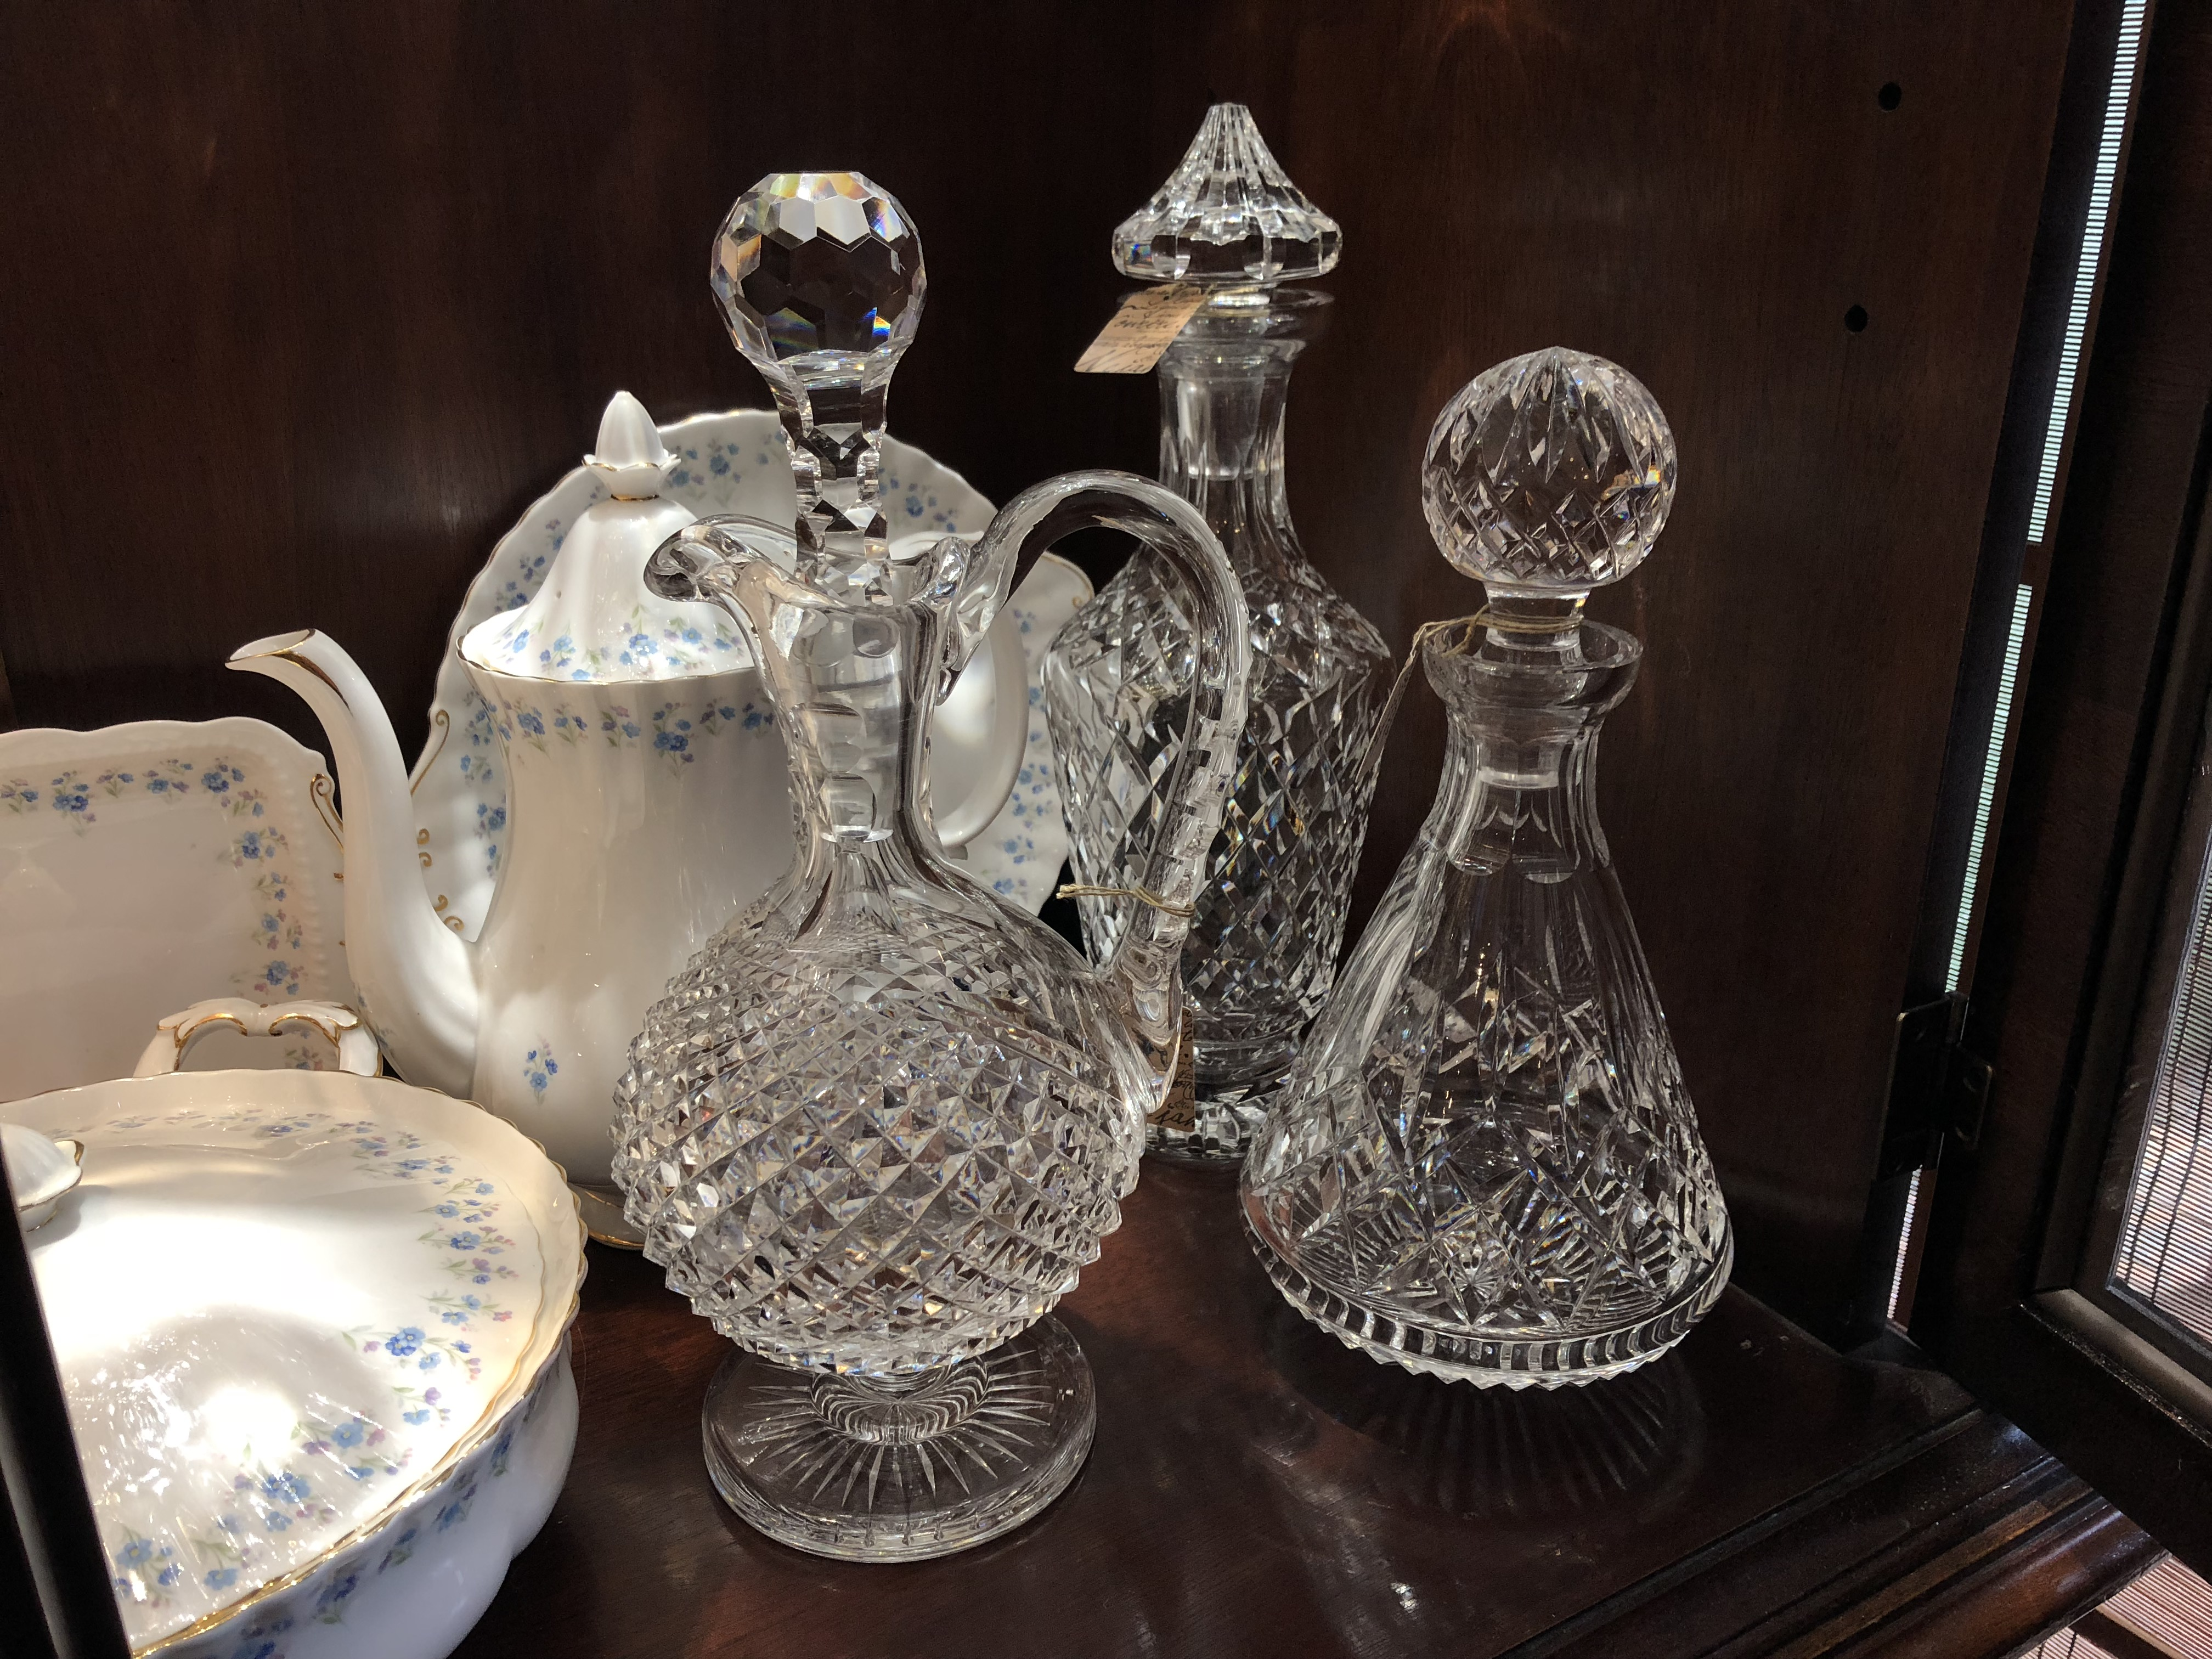 Vintage Waterford decanters